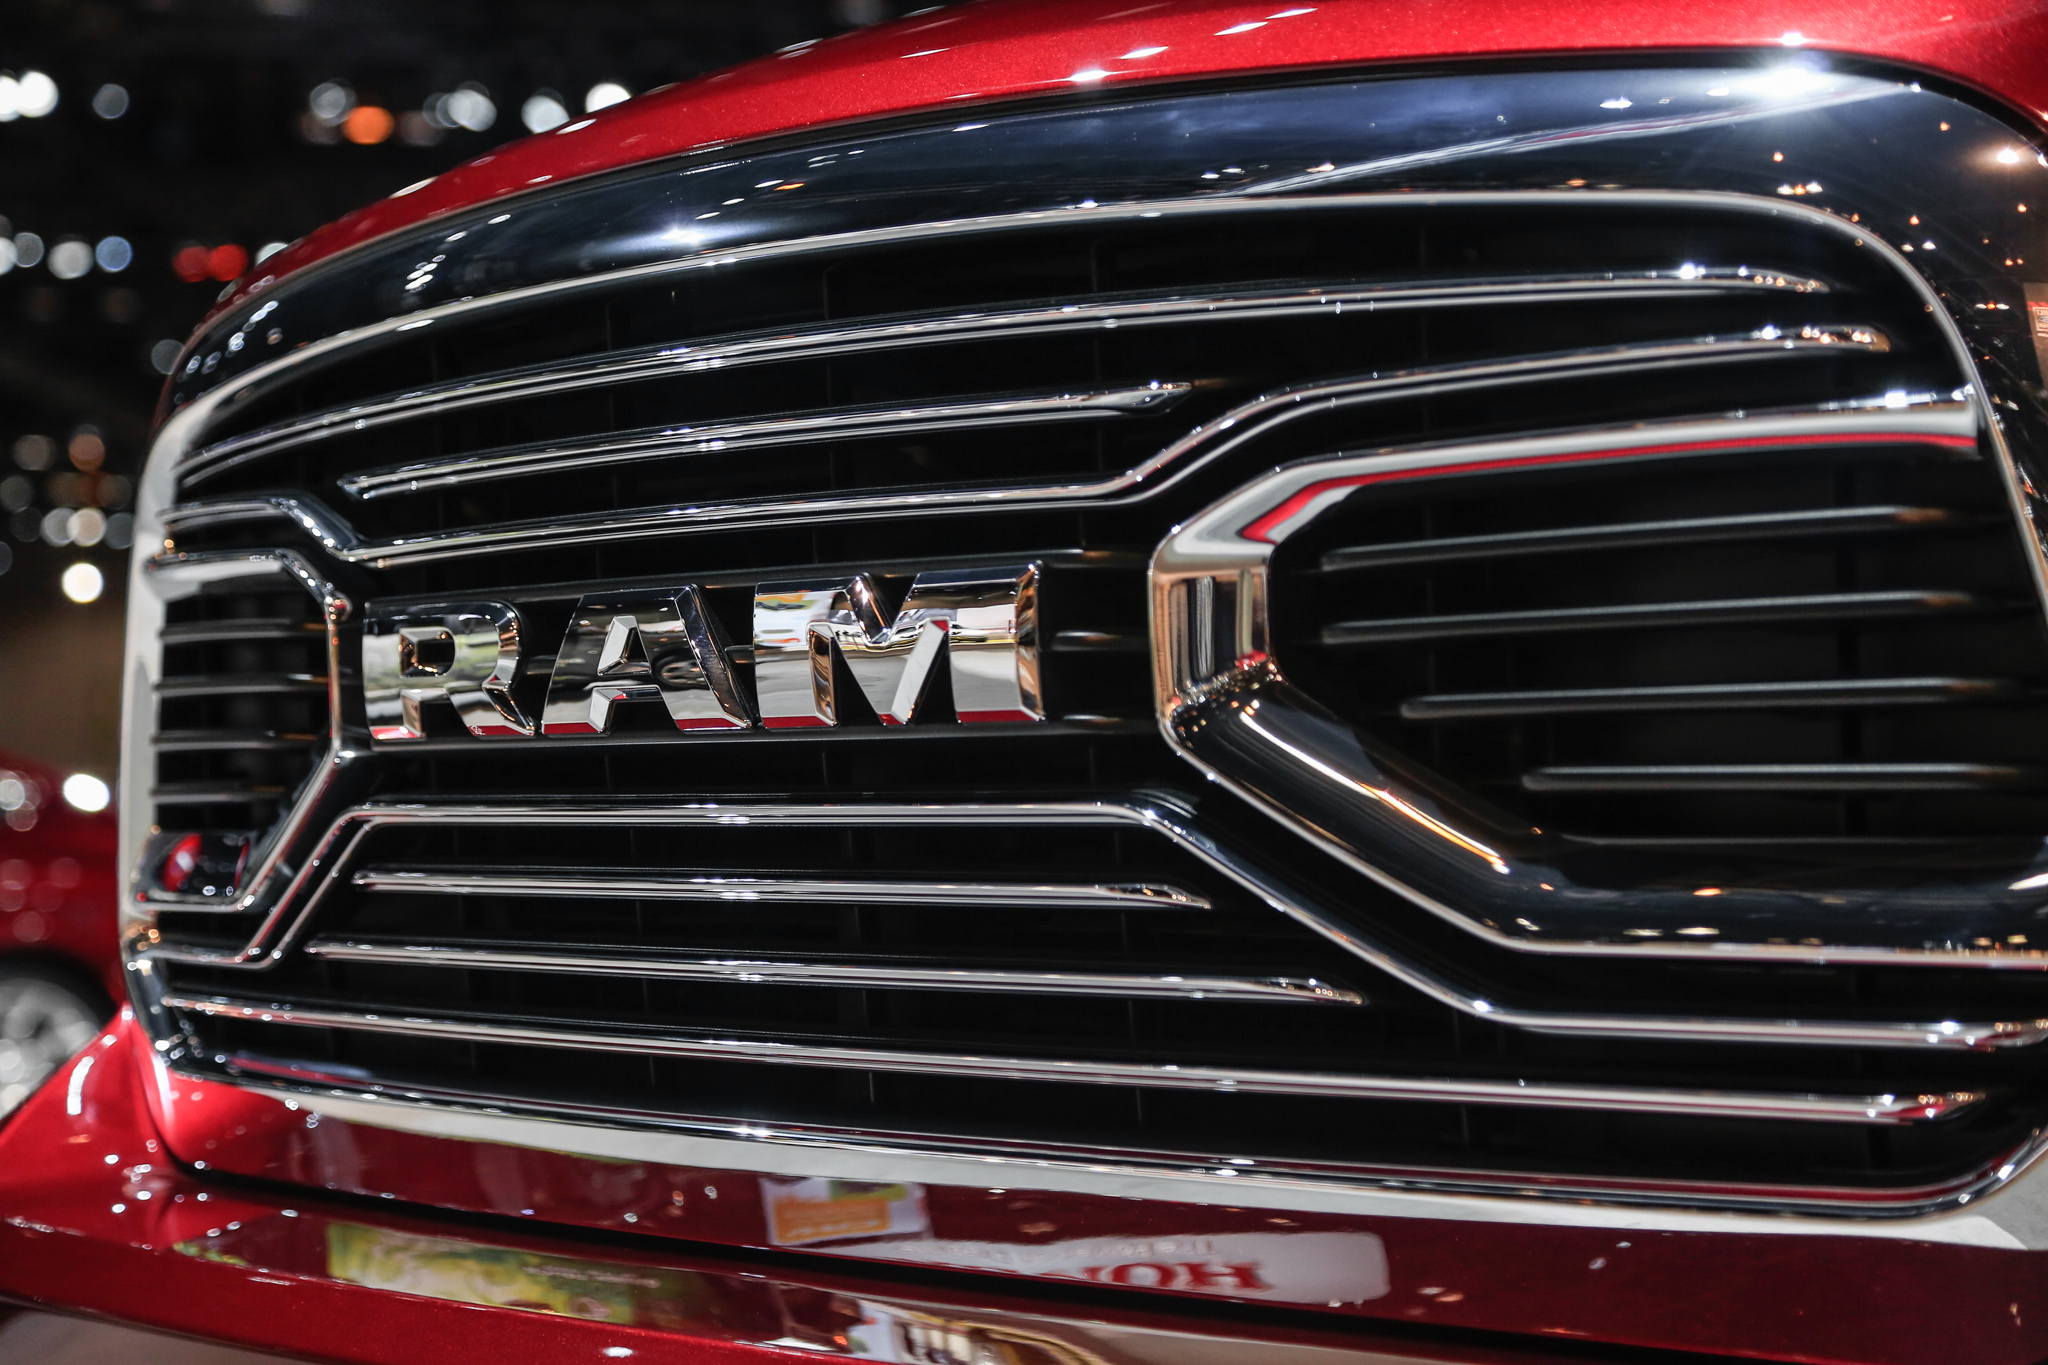 2015 Ram 1500 Laramie Limited is Ready to Make FCA Some Money